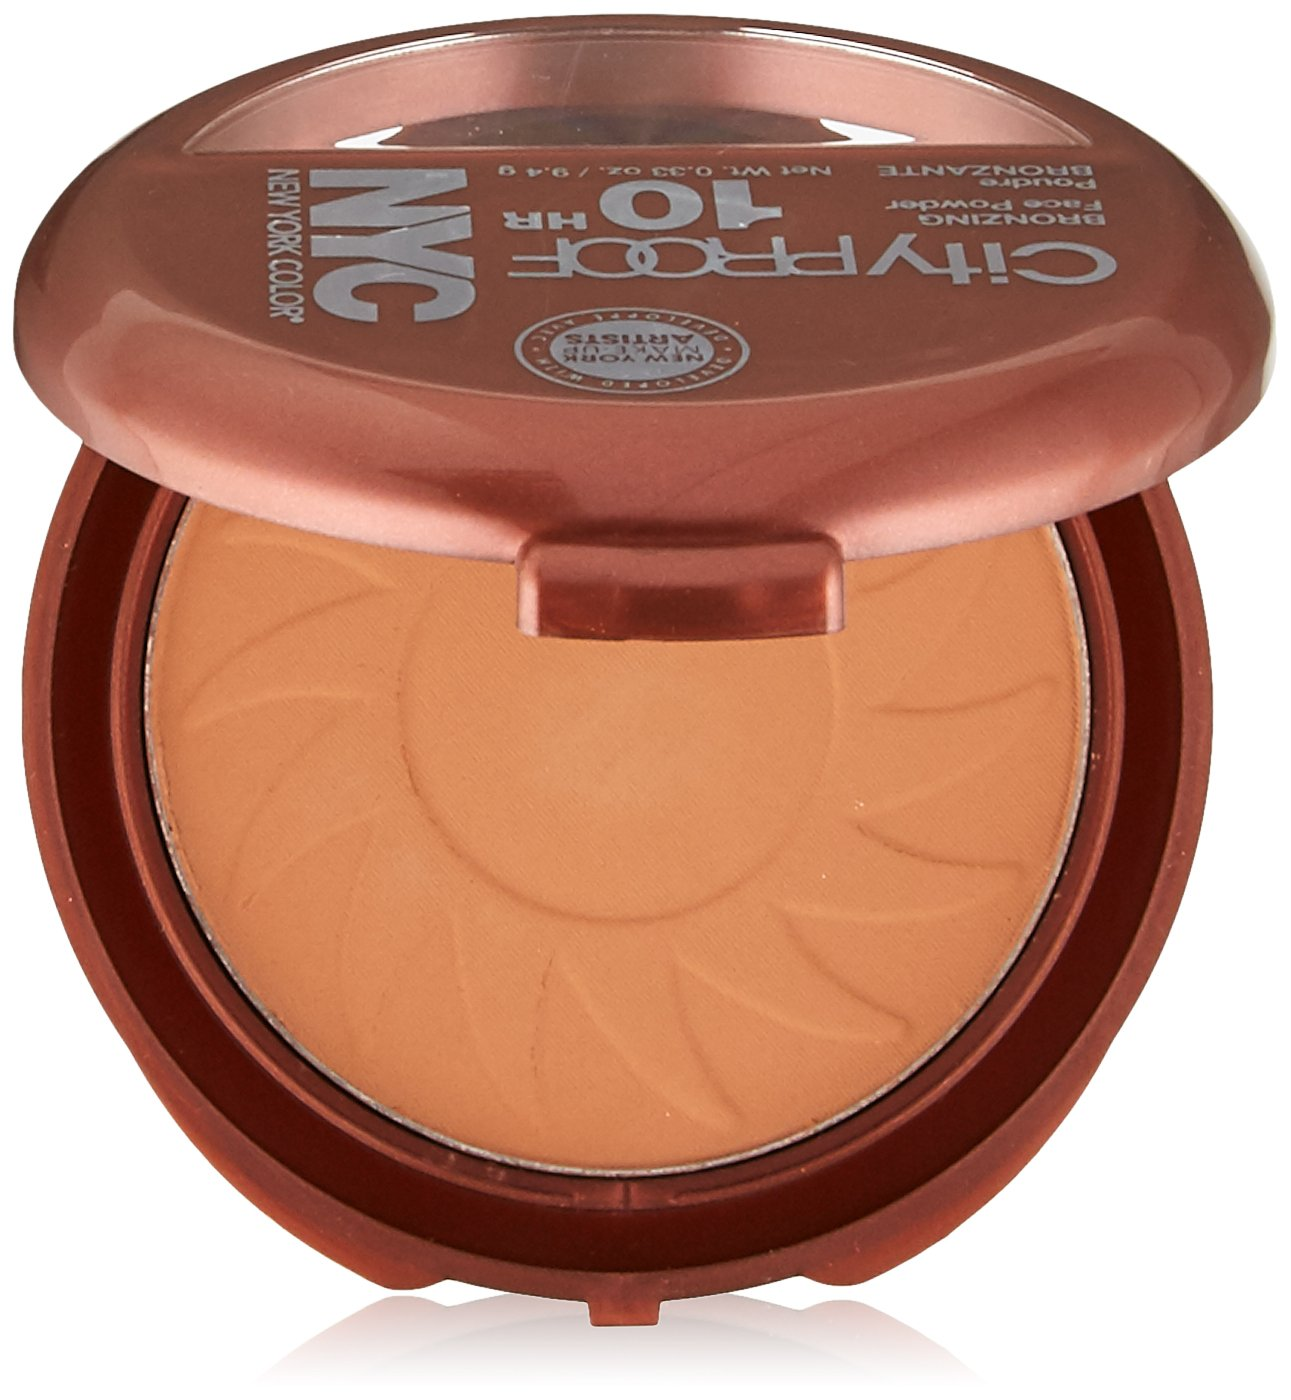 N.Y.C. New York Color Smooth Skin Bronzer, Sunny, 0.33 Ounce